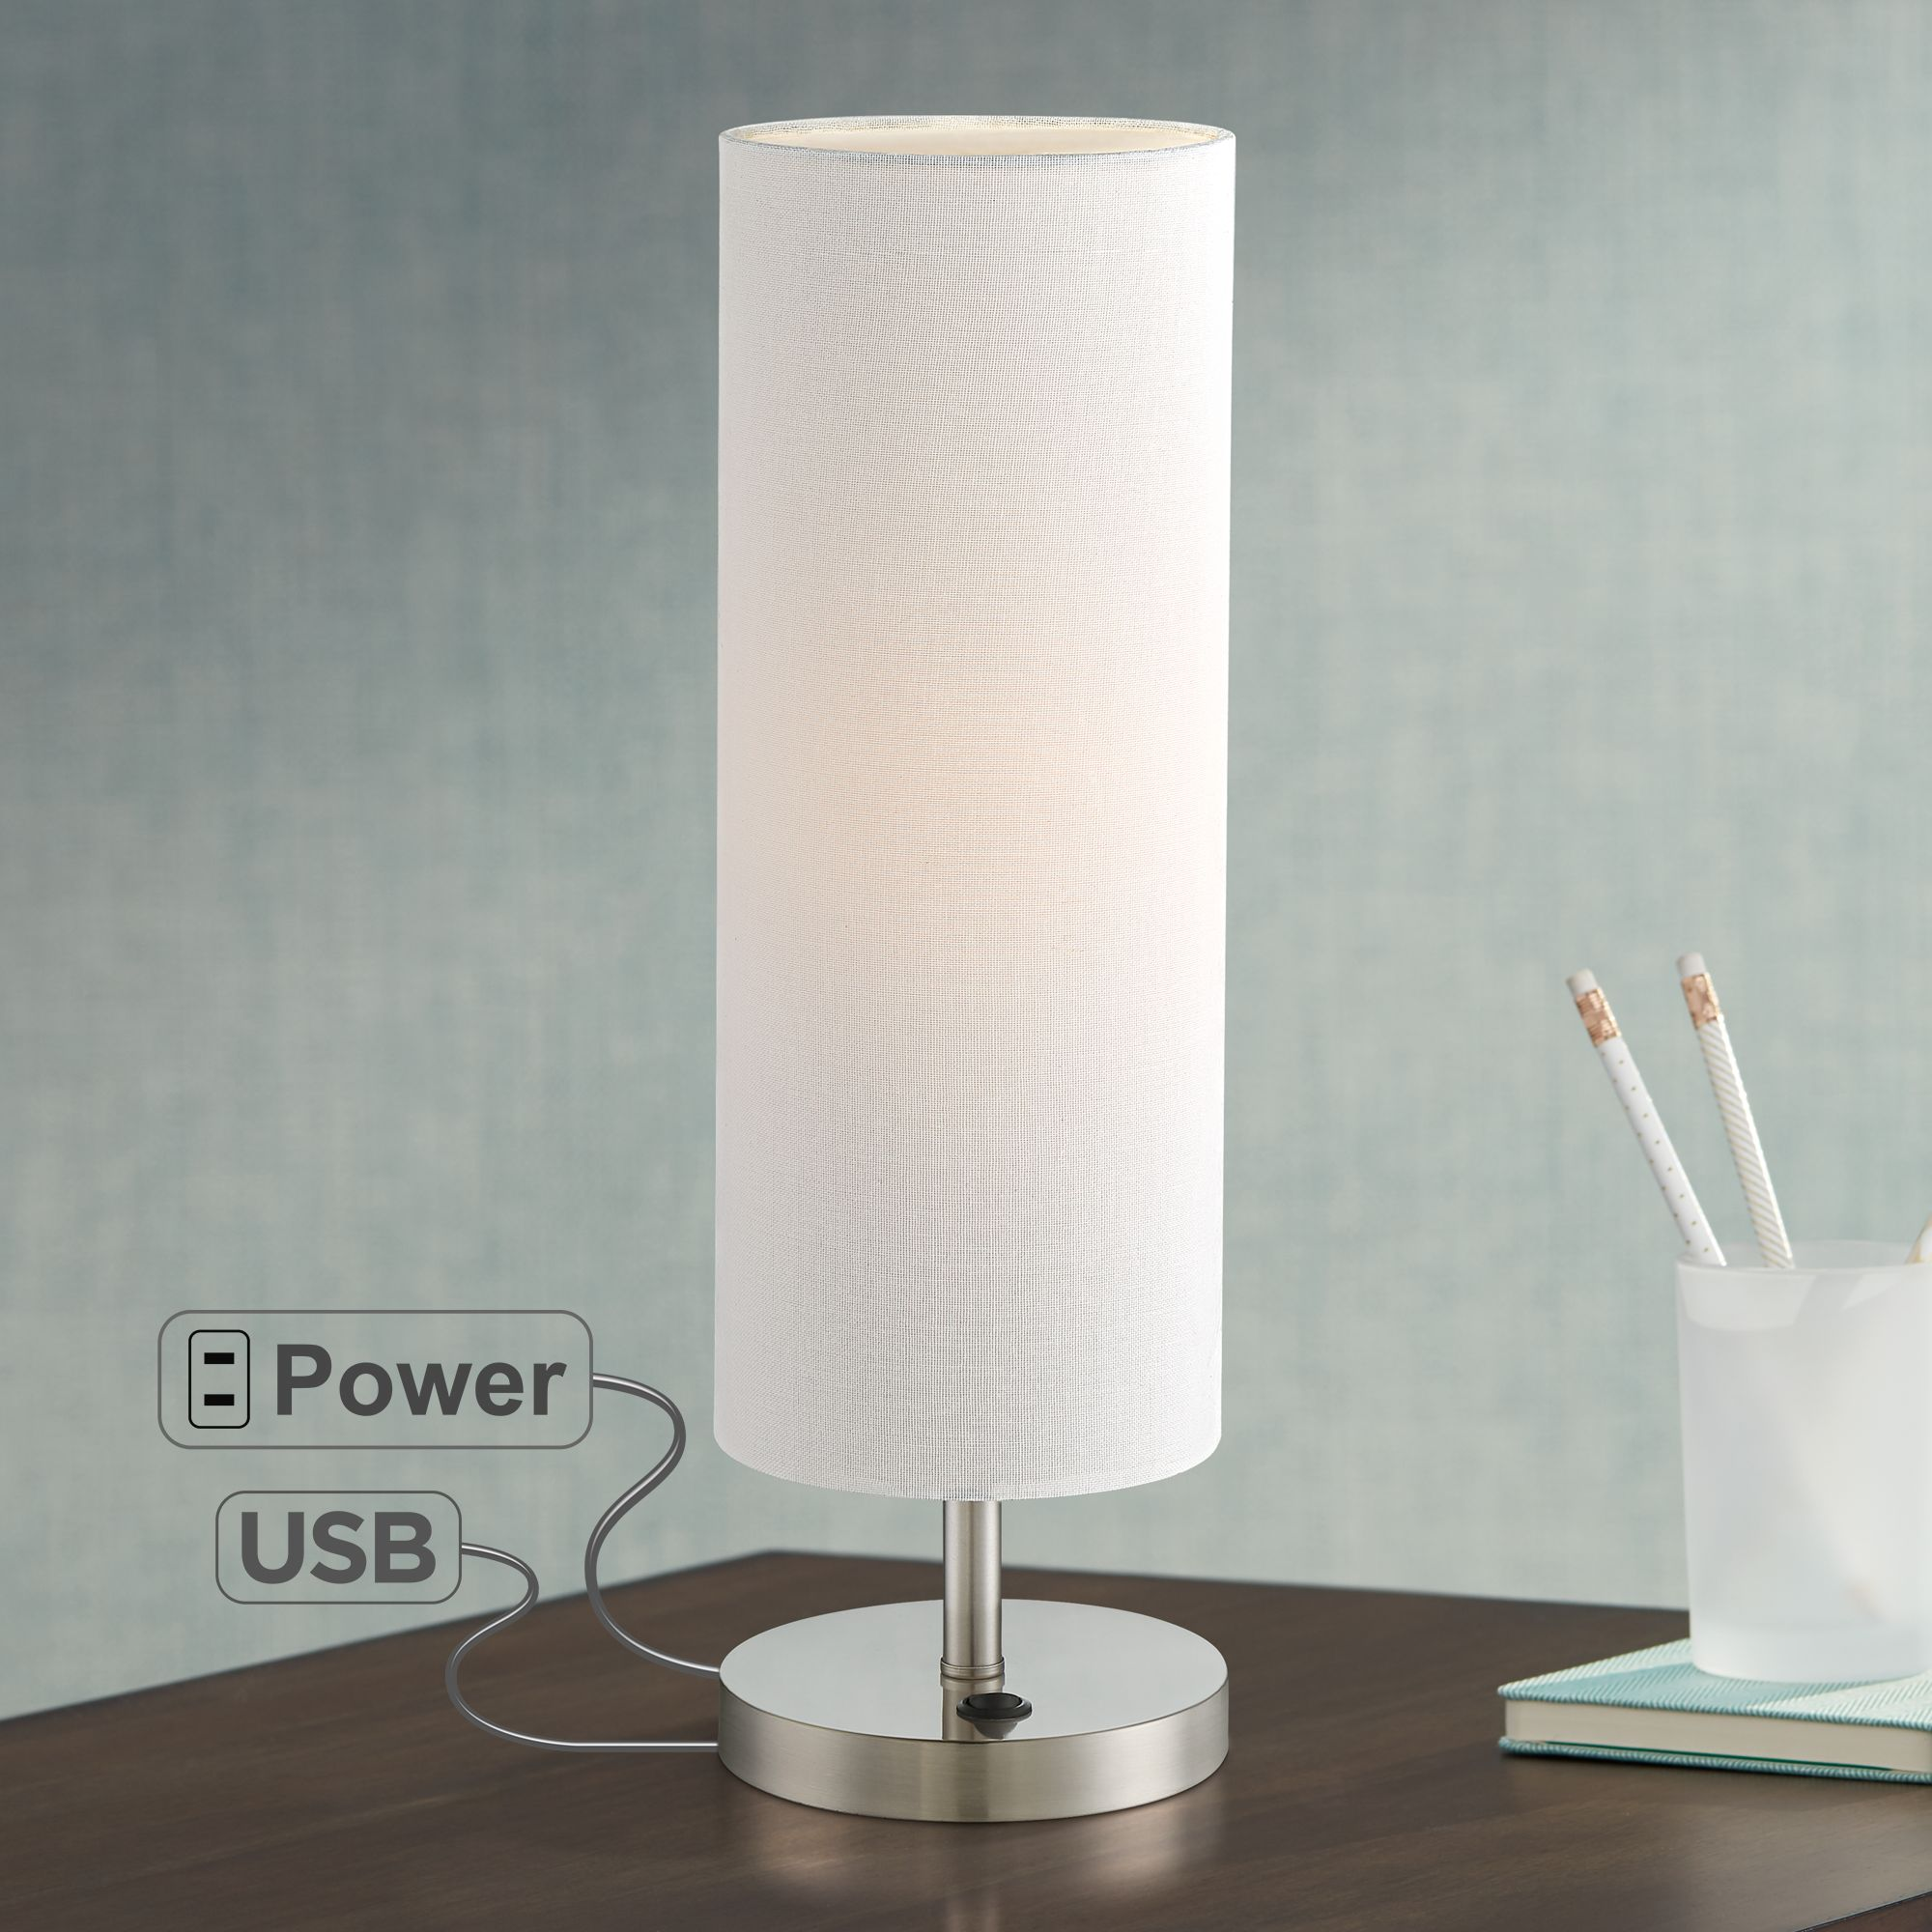 lighting modern accent table lamp with usb and power base brushed steel off white cylinder shade for living room dining centerpieces side furniture coffee cover ideas pier one